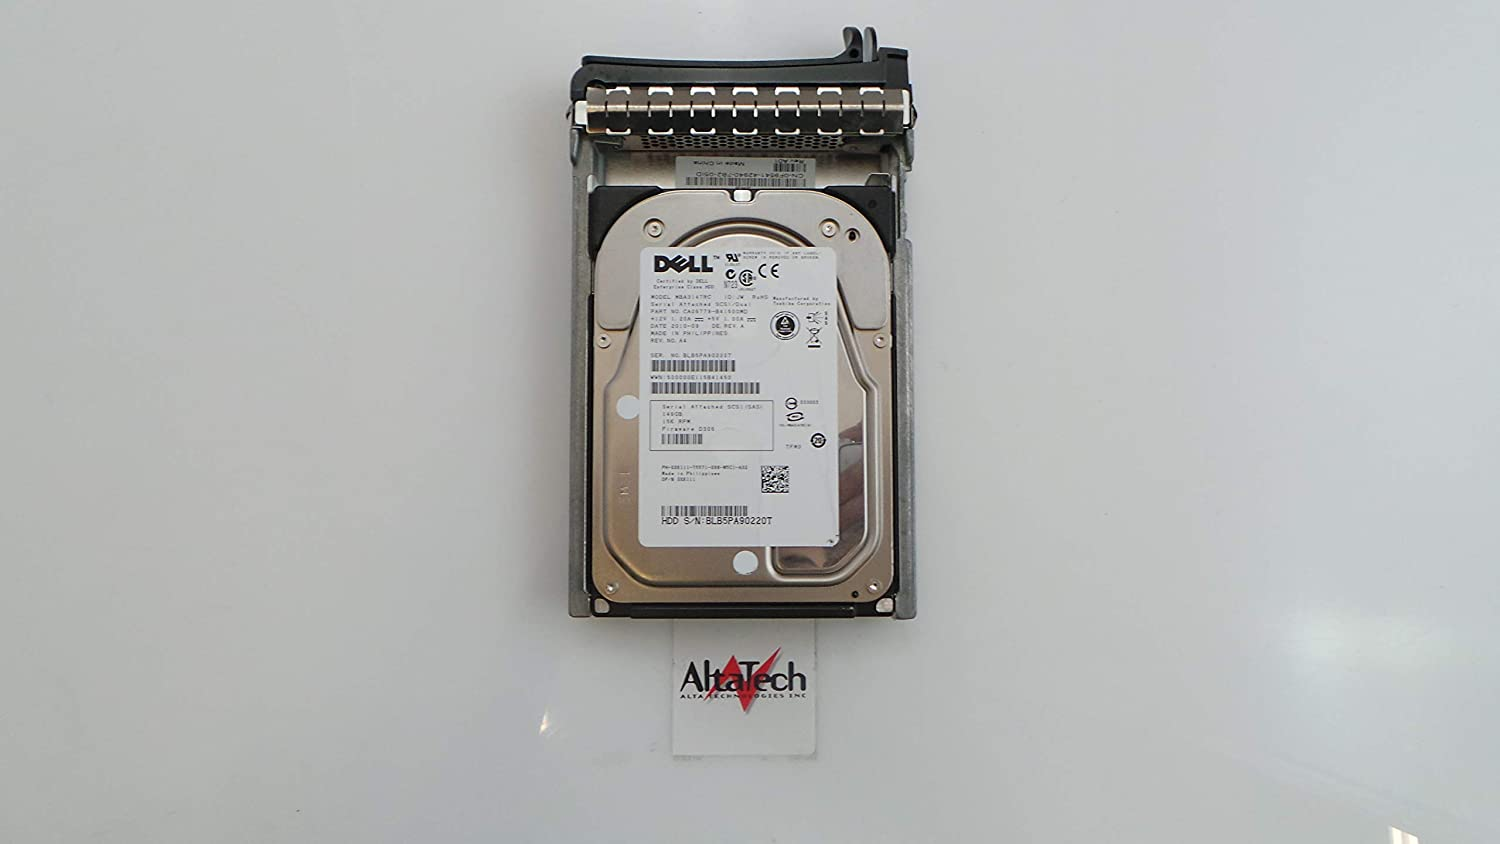 Dell OEM PowerEdge 2950 1950 Server XK111 146GB 15K SAS Hard Drive MBA3147RC